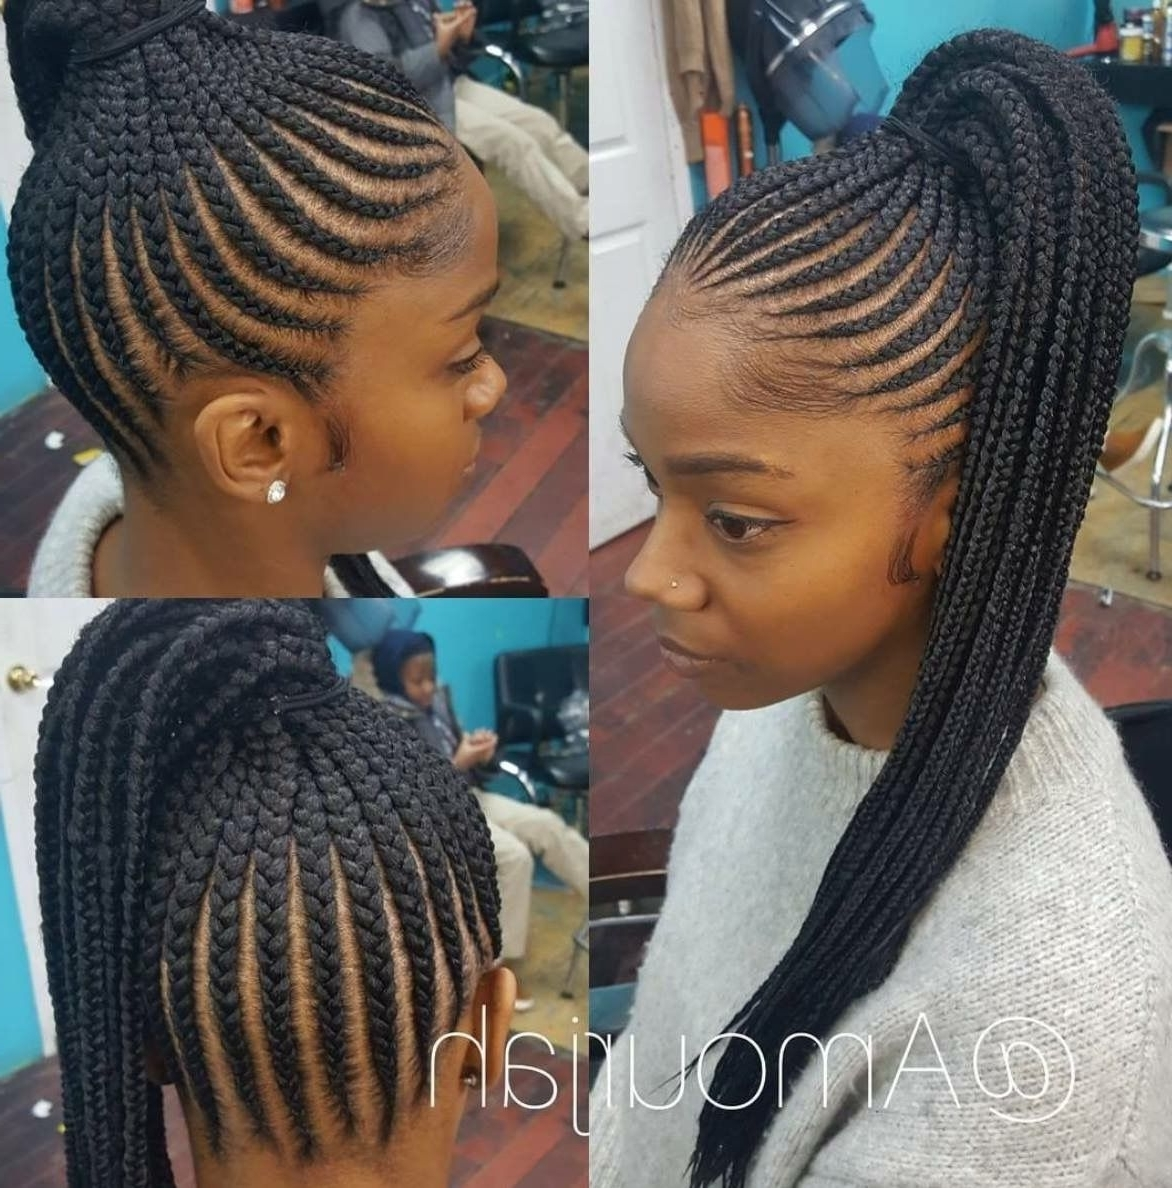 Widely Used Chunky Black Ghana Braids Ponytail Hairstyles Pertaining To Pinterrice Nicole (View 19 of 20)